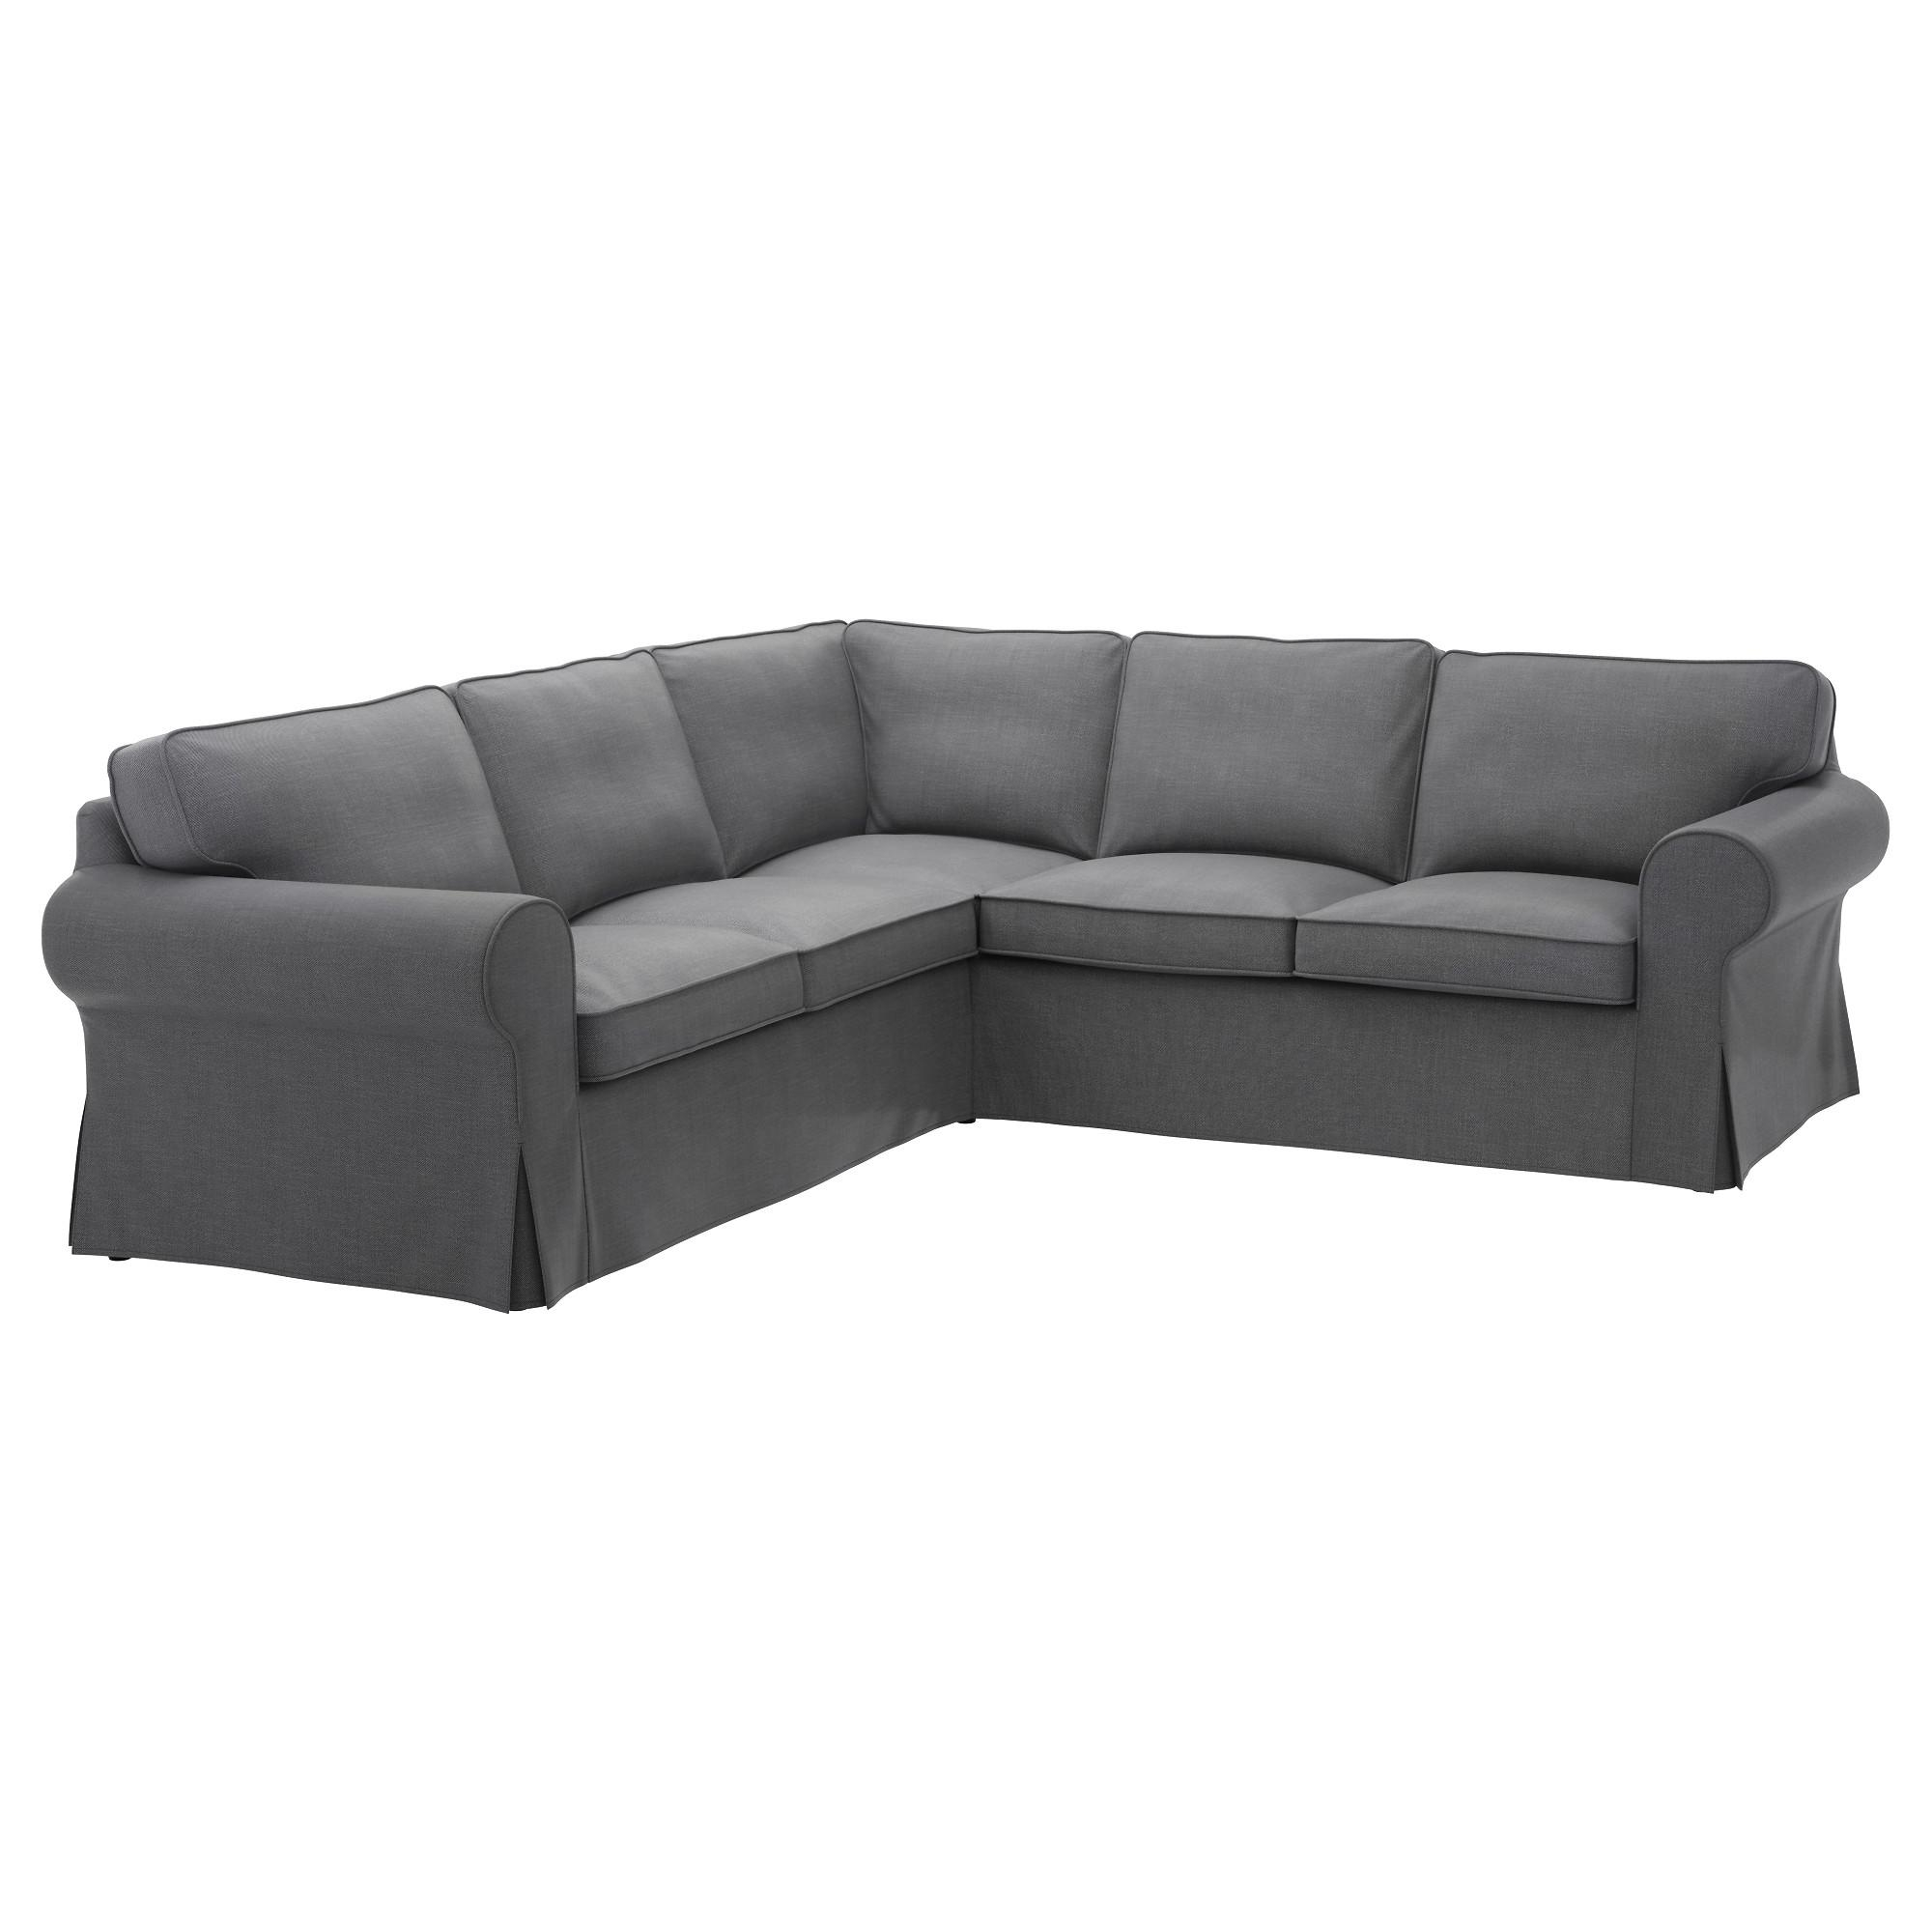 Ektorp Sectional, 4 Seat Corner – Lofallet Beige – Ikea For 2 Seat Sectional Sofas (Image 3 of 15)